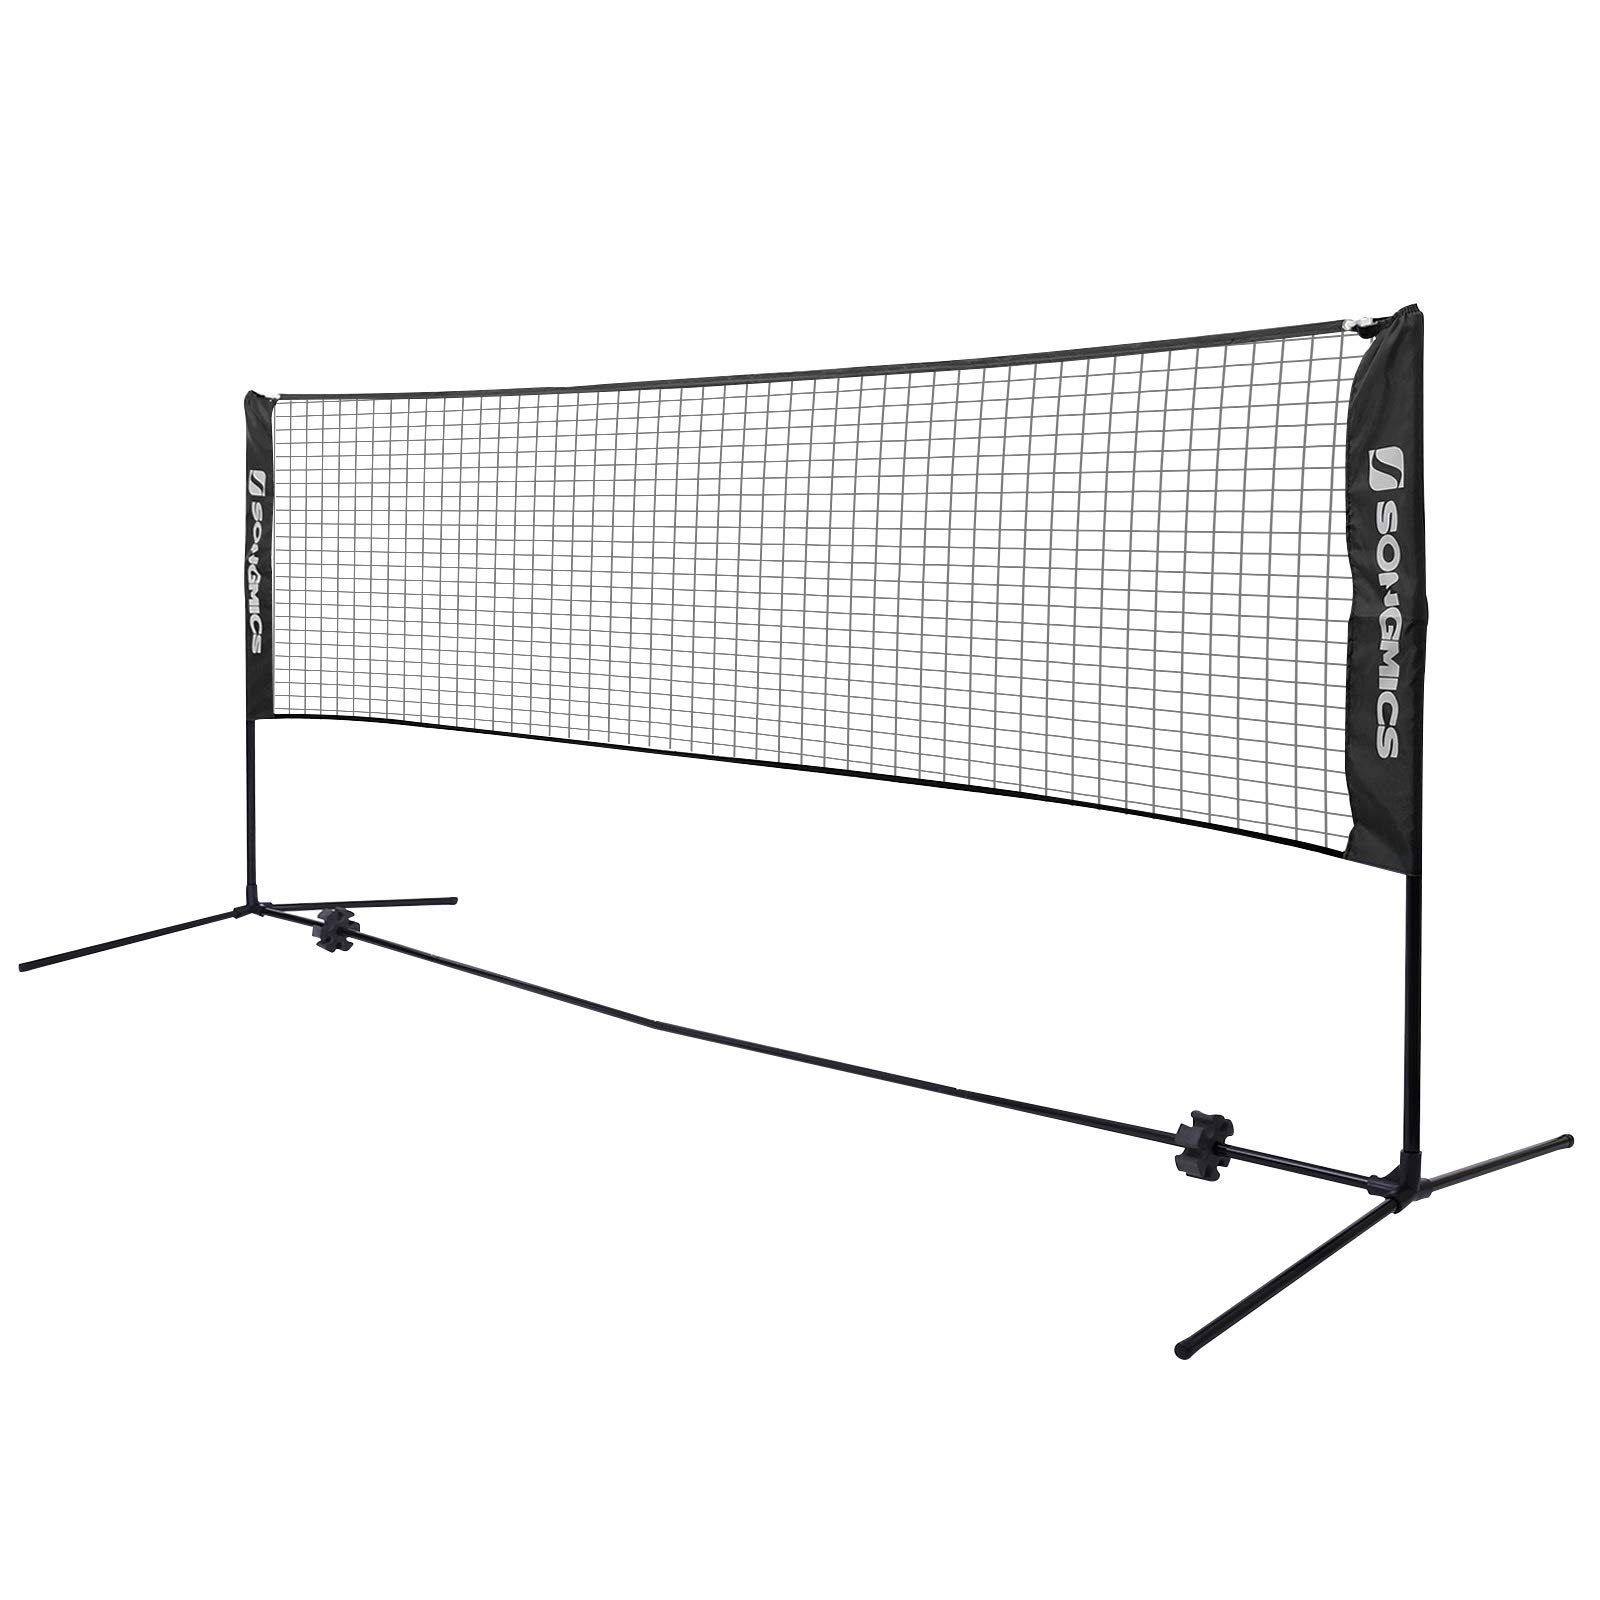 9.8 FT Badminton Net Set Portable Folding Removable Badminton Net with Poles and Stand Carry Bag Lightweight Easy Setup for Garden Court Backyard Beach Indoor Outdoor